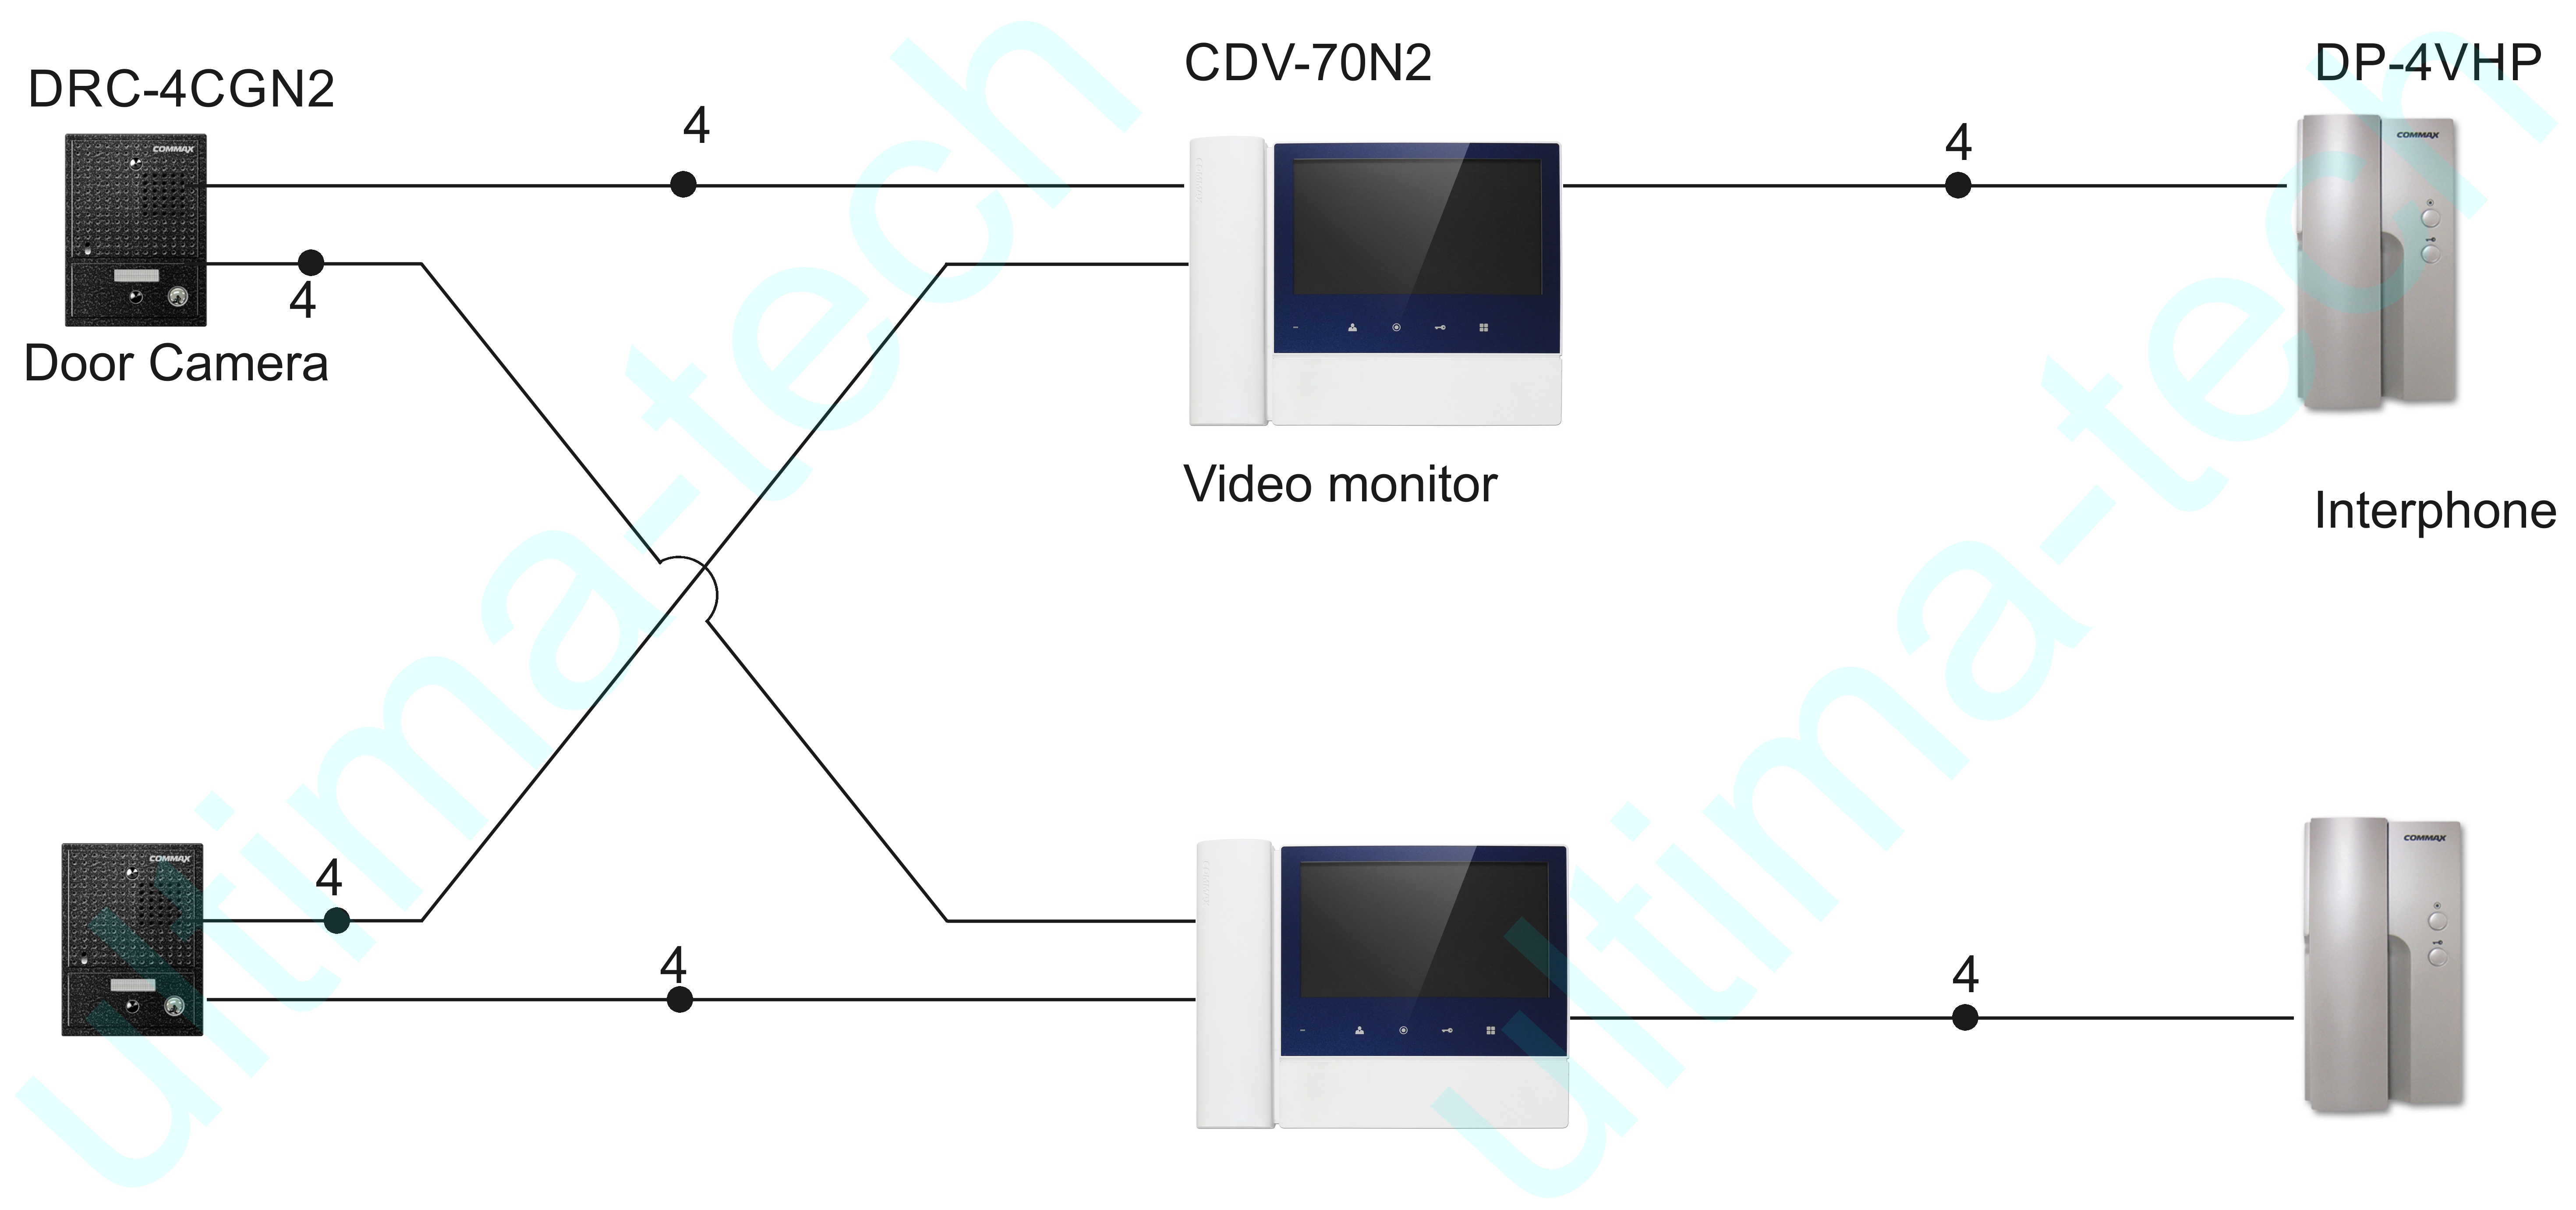 Drc wiring diagram introduction to electrical wiring diagrams commax video door intercom system with 7 monitor cdv 70n2 drc 4cgn2 rh ebay com drc edge tail light wiring diagram dc wiring diagram for auxiliary sailboat asfbconference2016 Images